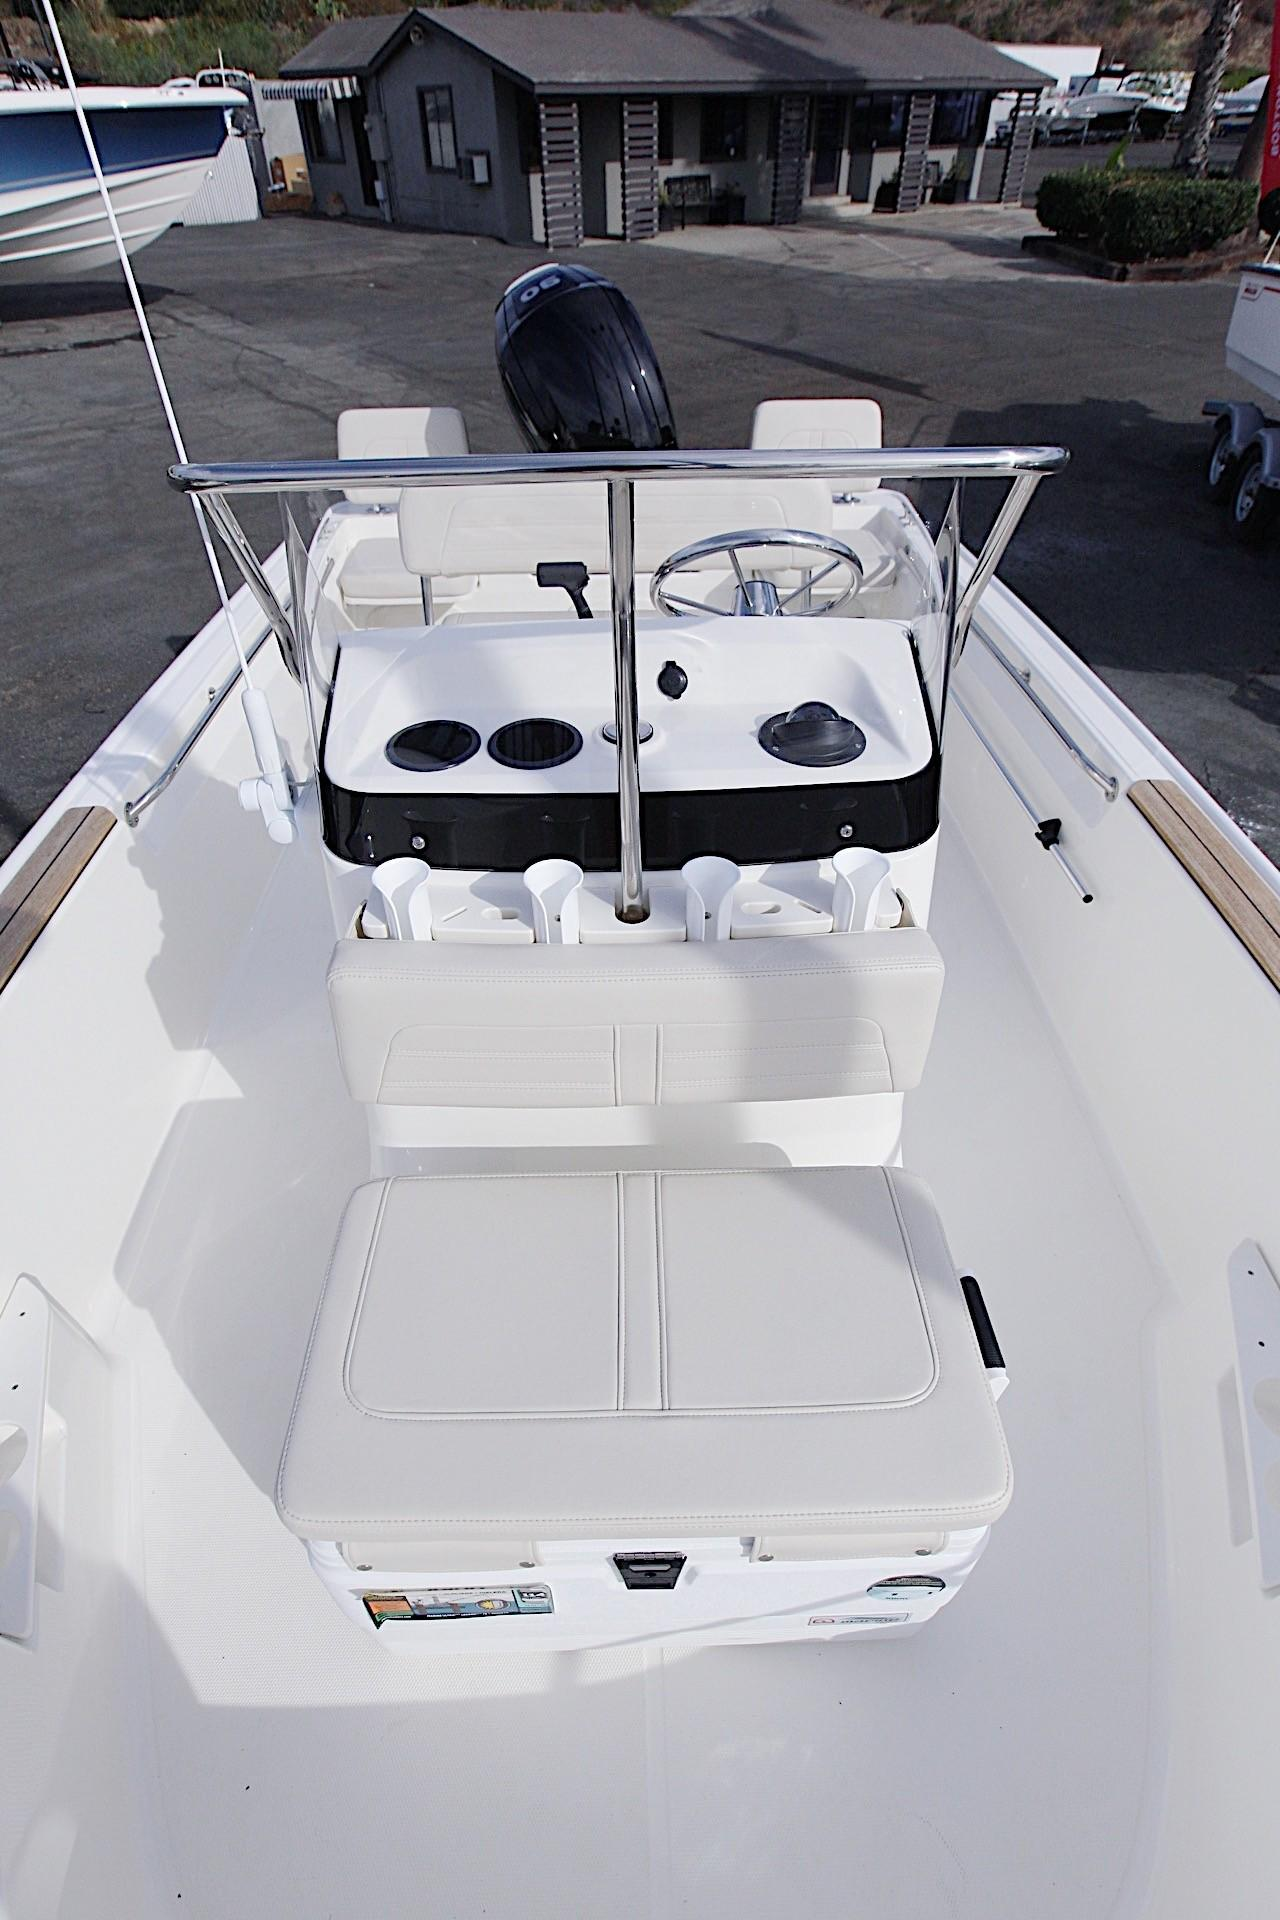 2020 Boston Whaler 170 Montauk #BW0396H inventory image at Sun Country Coastal in Newport Beach